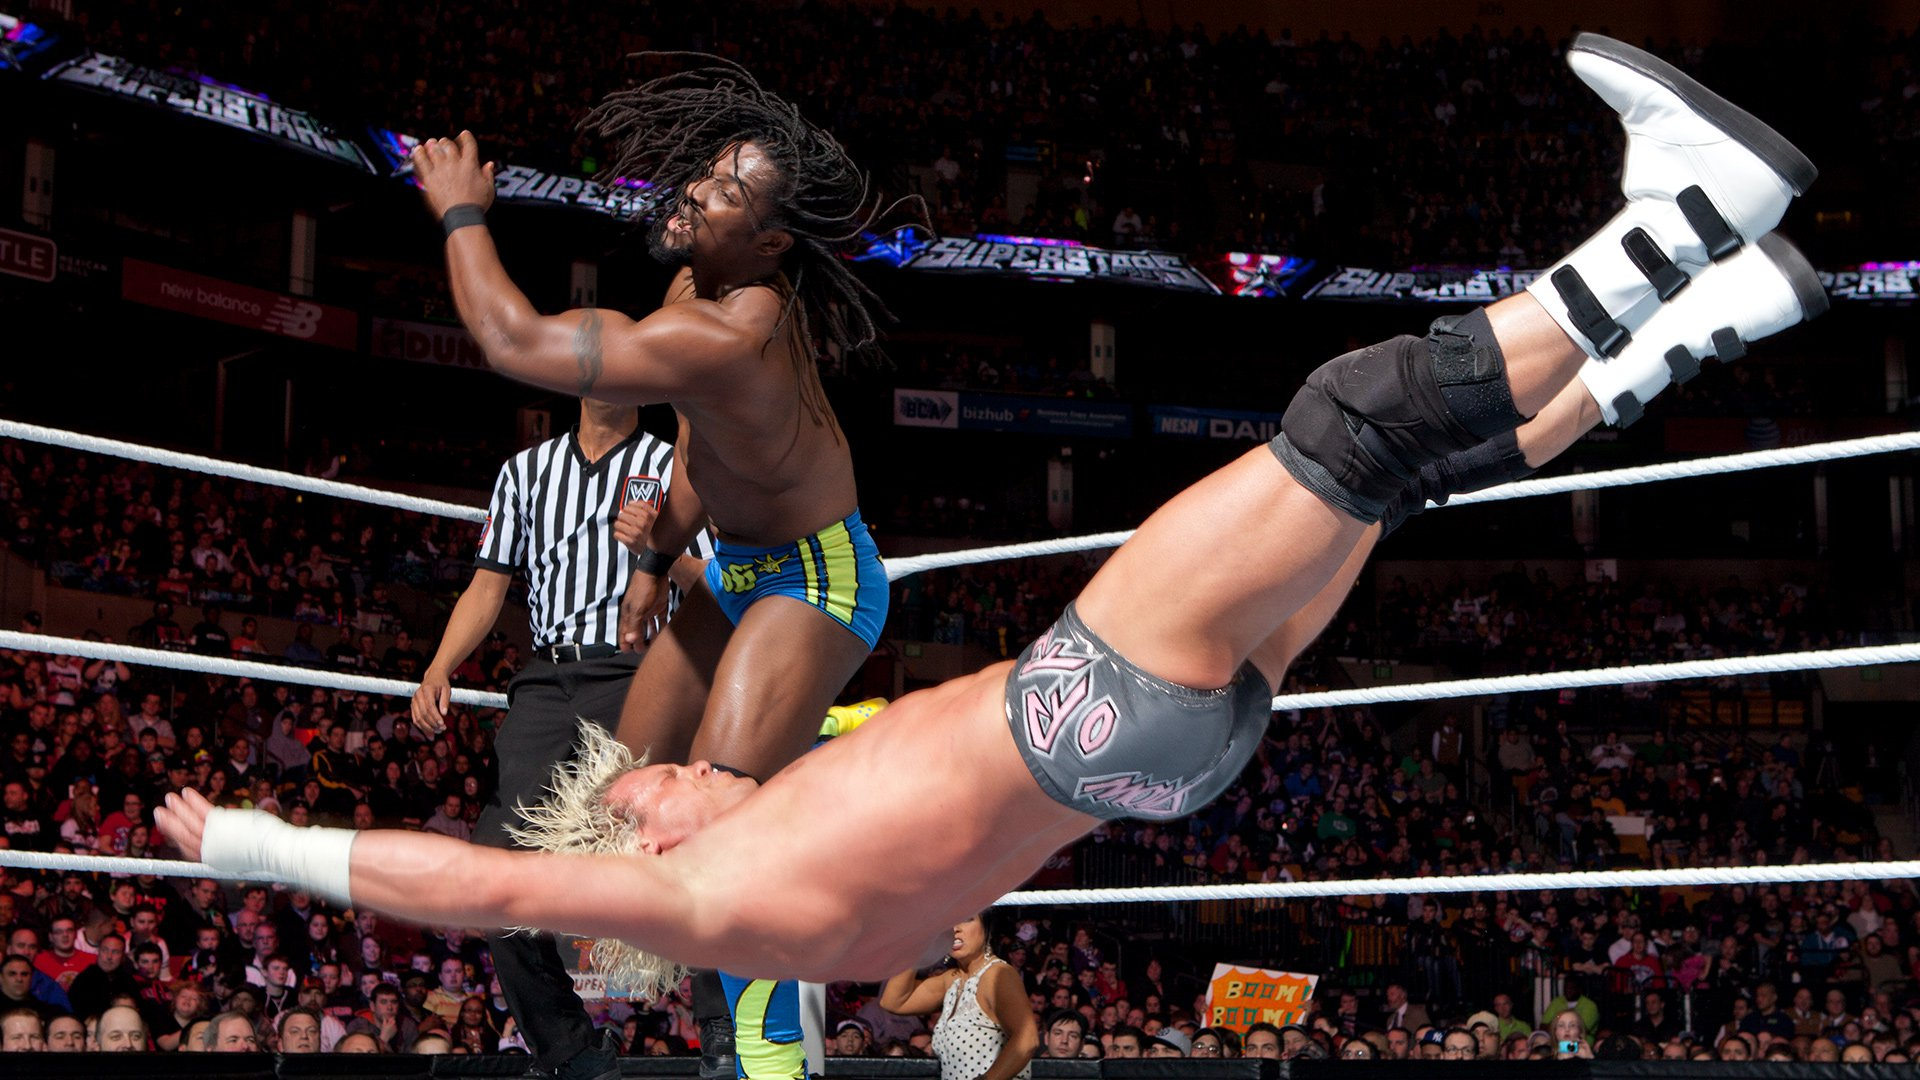 Kofi Kingston vs. Dolph Ziggler: WWE Superstars, 8 Mars 2012